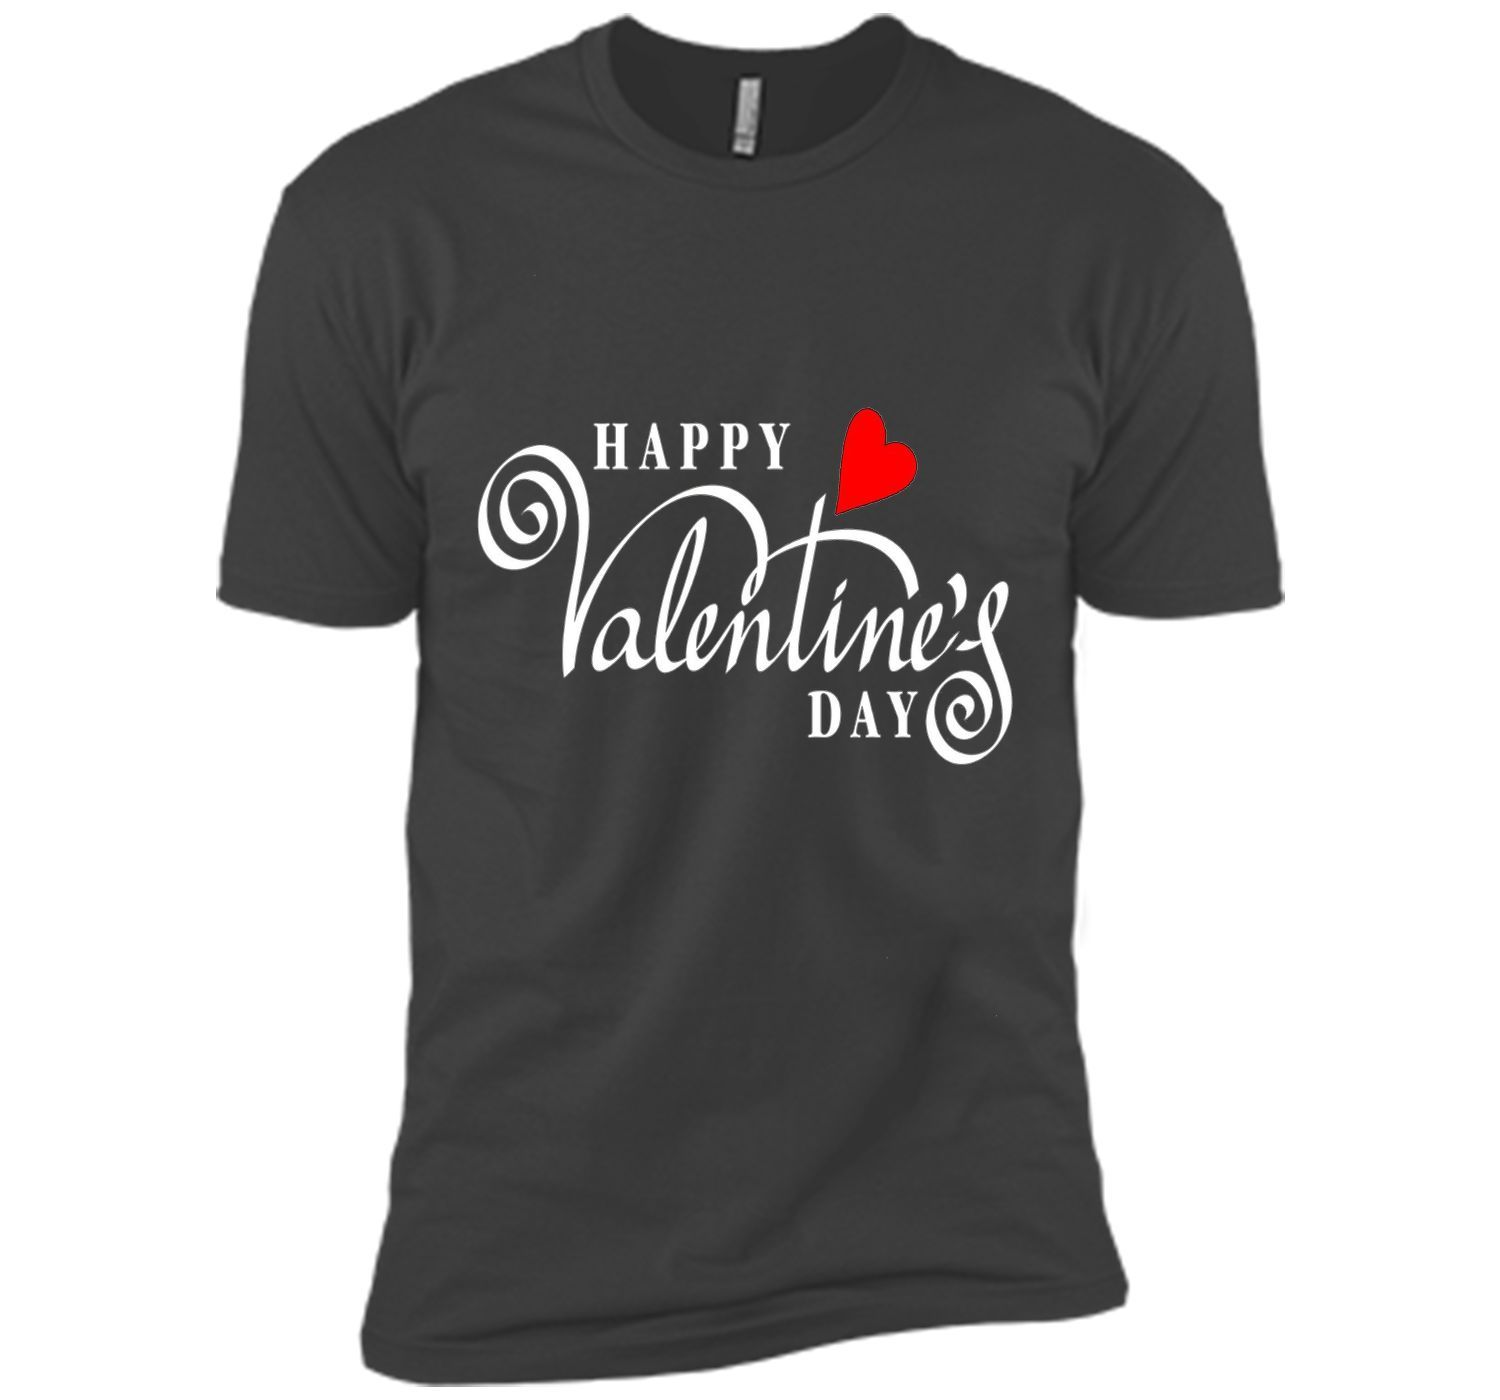 cursive fonts for wedding cards%0A Happy Valentine u    s Day Tshirt with Cool Cursive Font  u     Heart